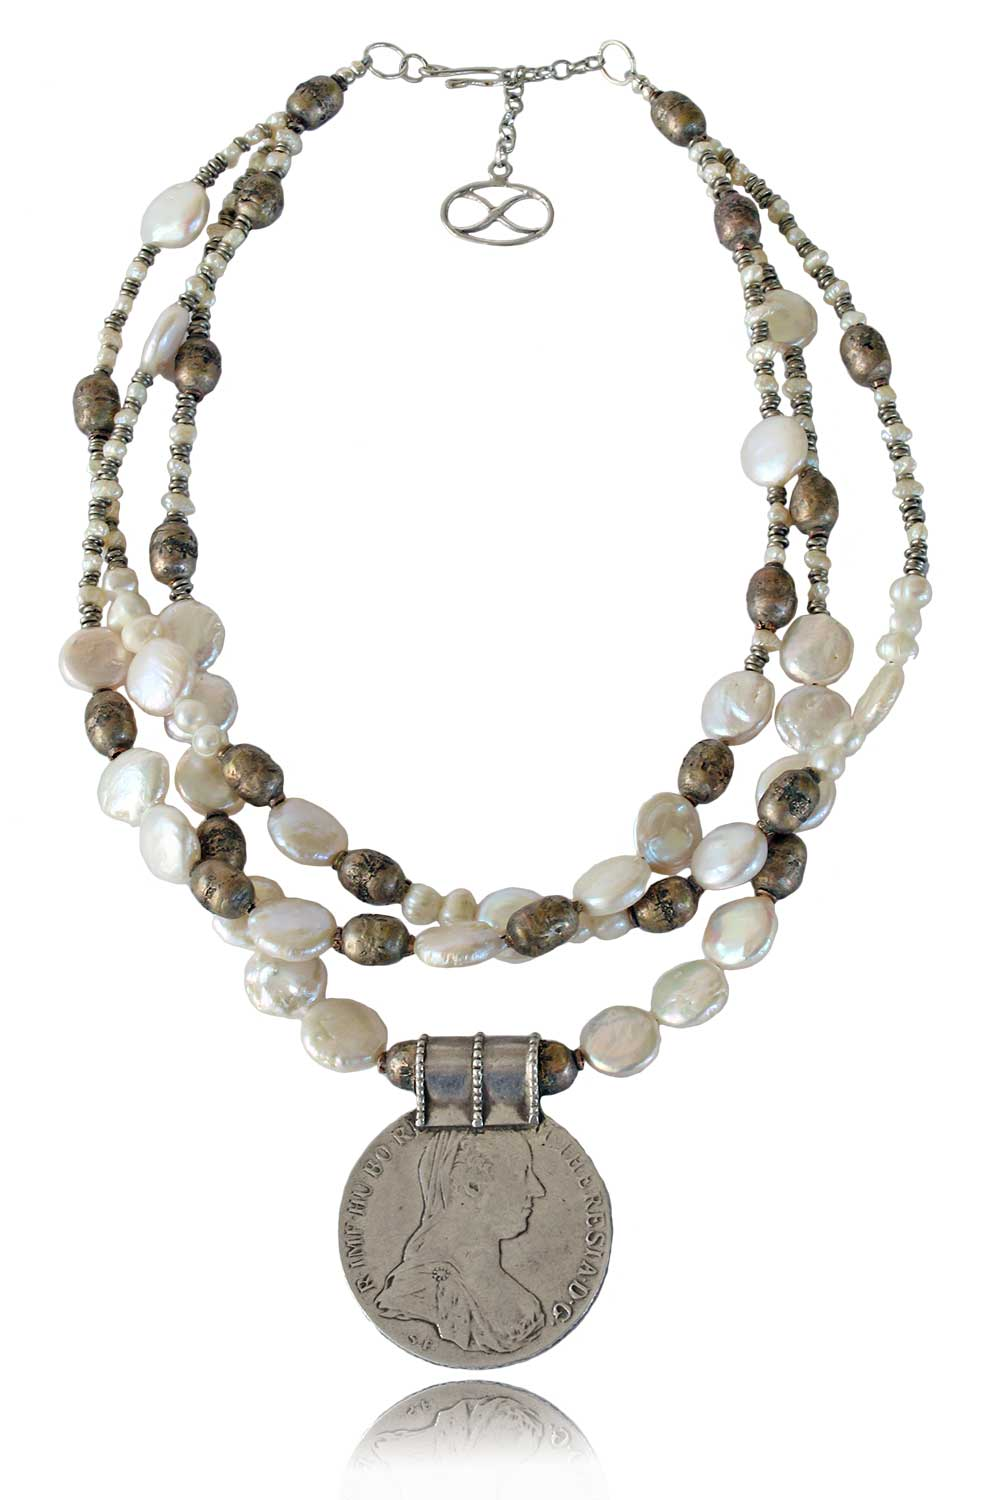 Lulu Maria Teresa Coin Pendant with Pearls Necklace by SHIKHAZURI